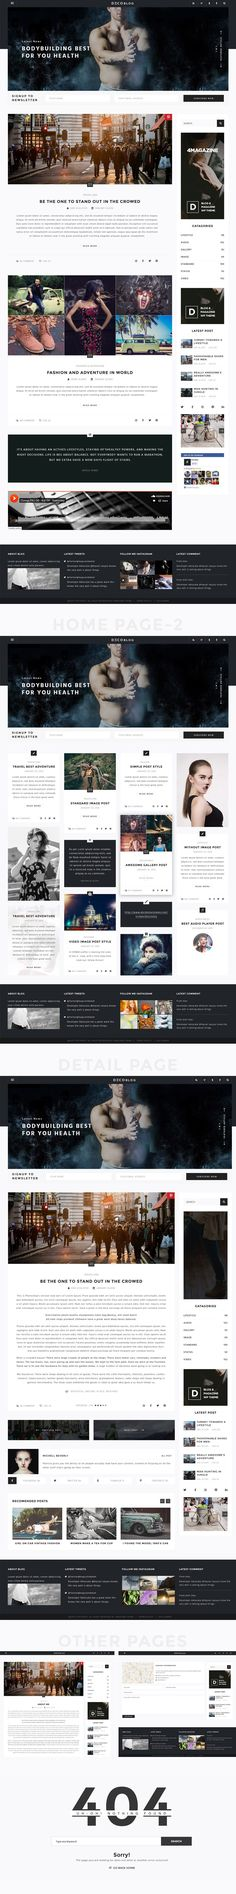 Personal Blog Psd Templates